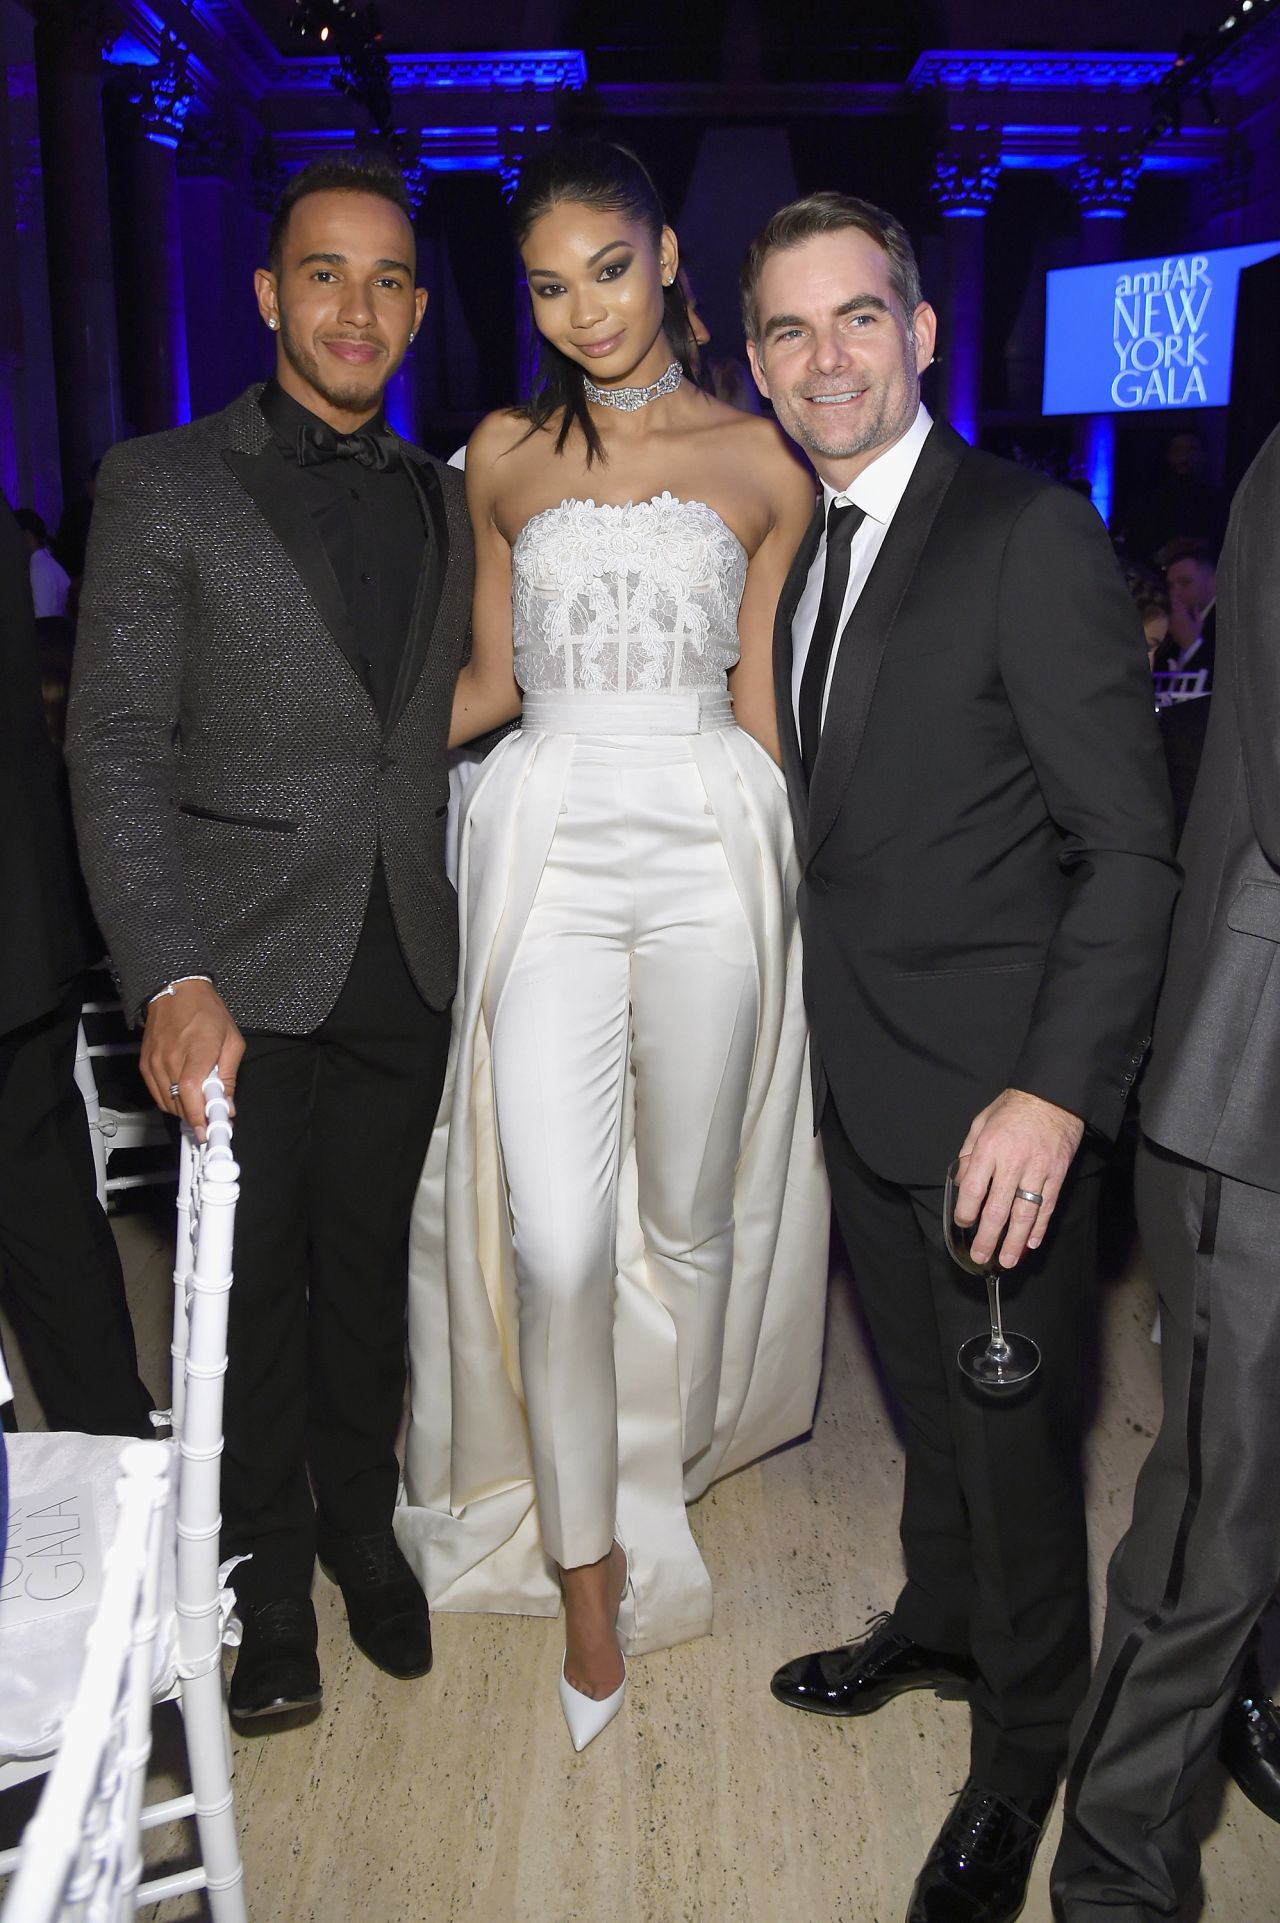 chanel-iman-2016-amfar-new-york-gala-in-new-york-city-ny-2